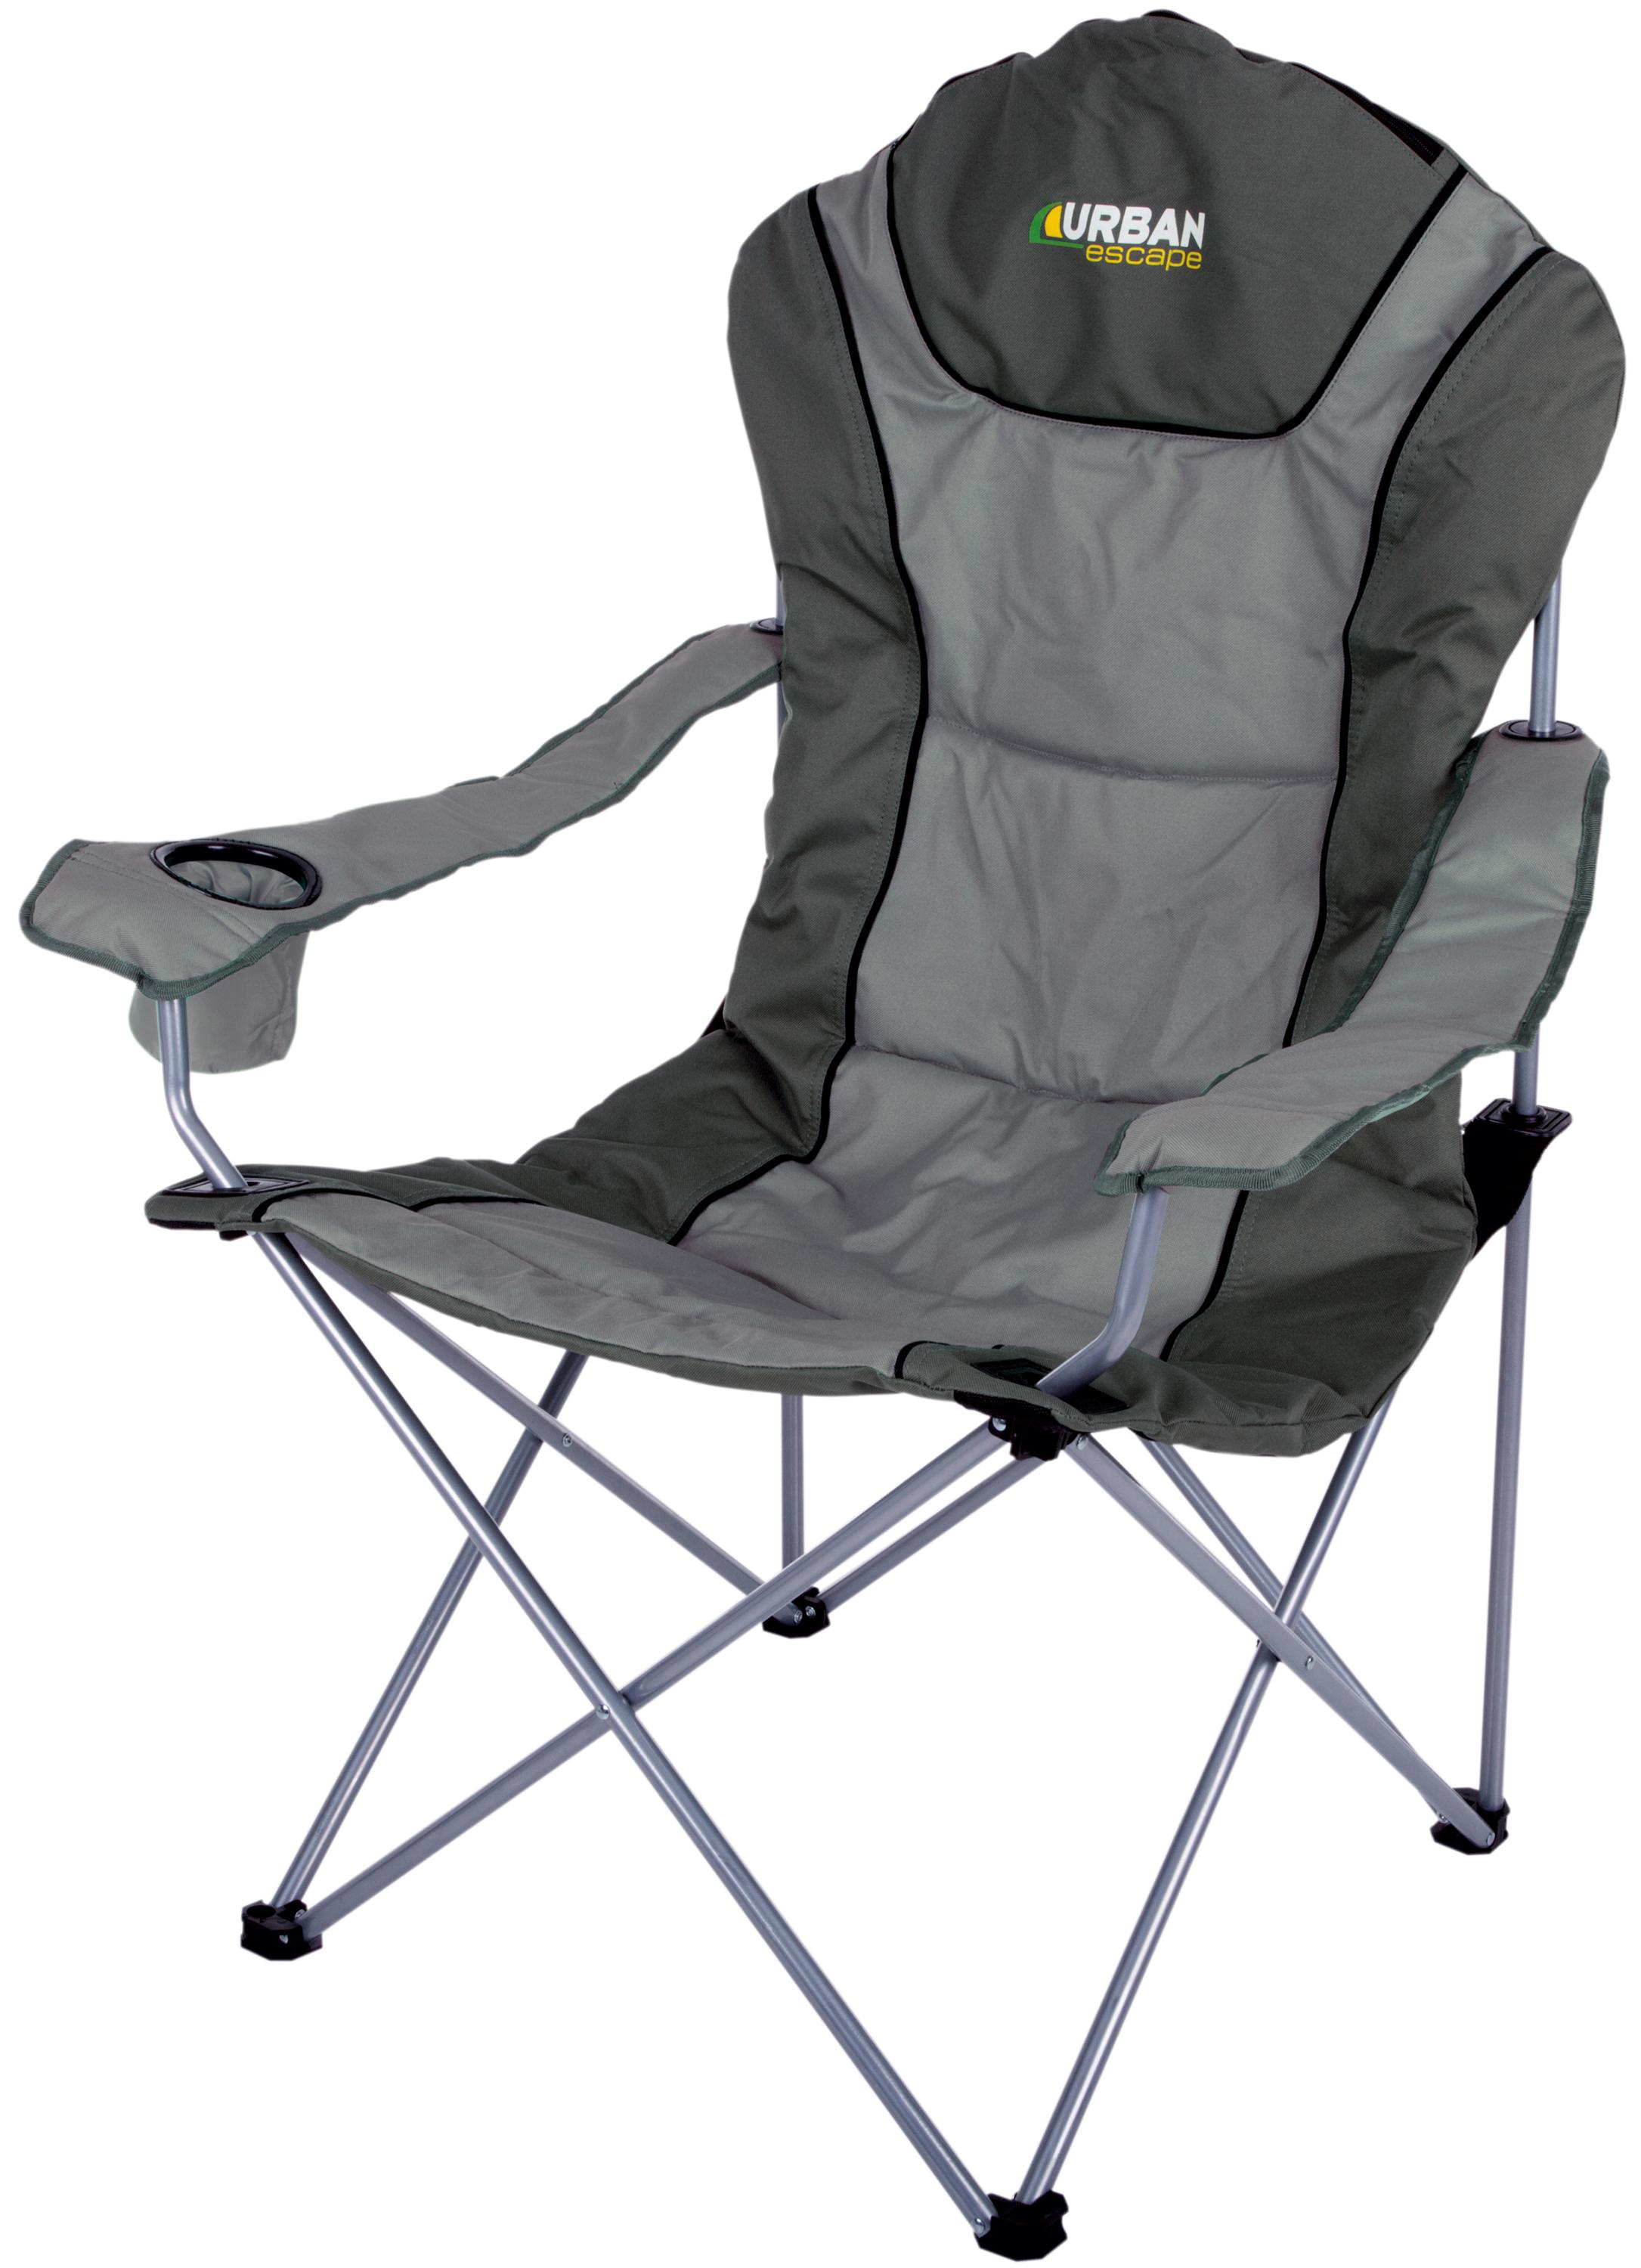 Folding Arm Chair Urban Escape Folding Foldable Seat Arm Chair Fishing